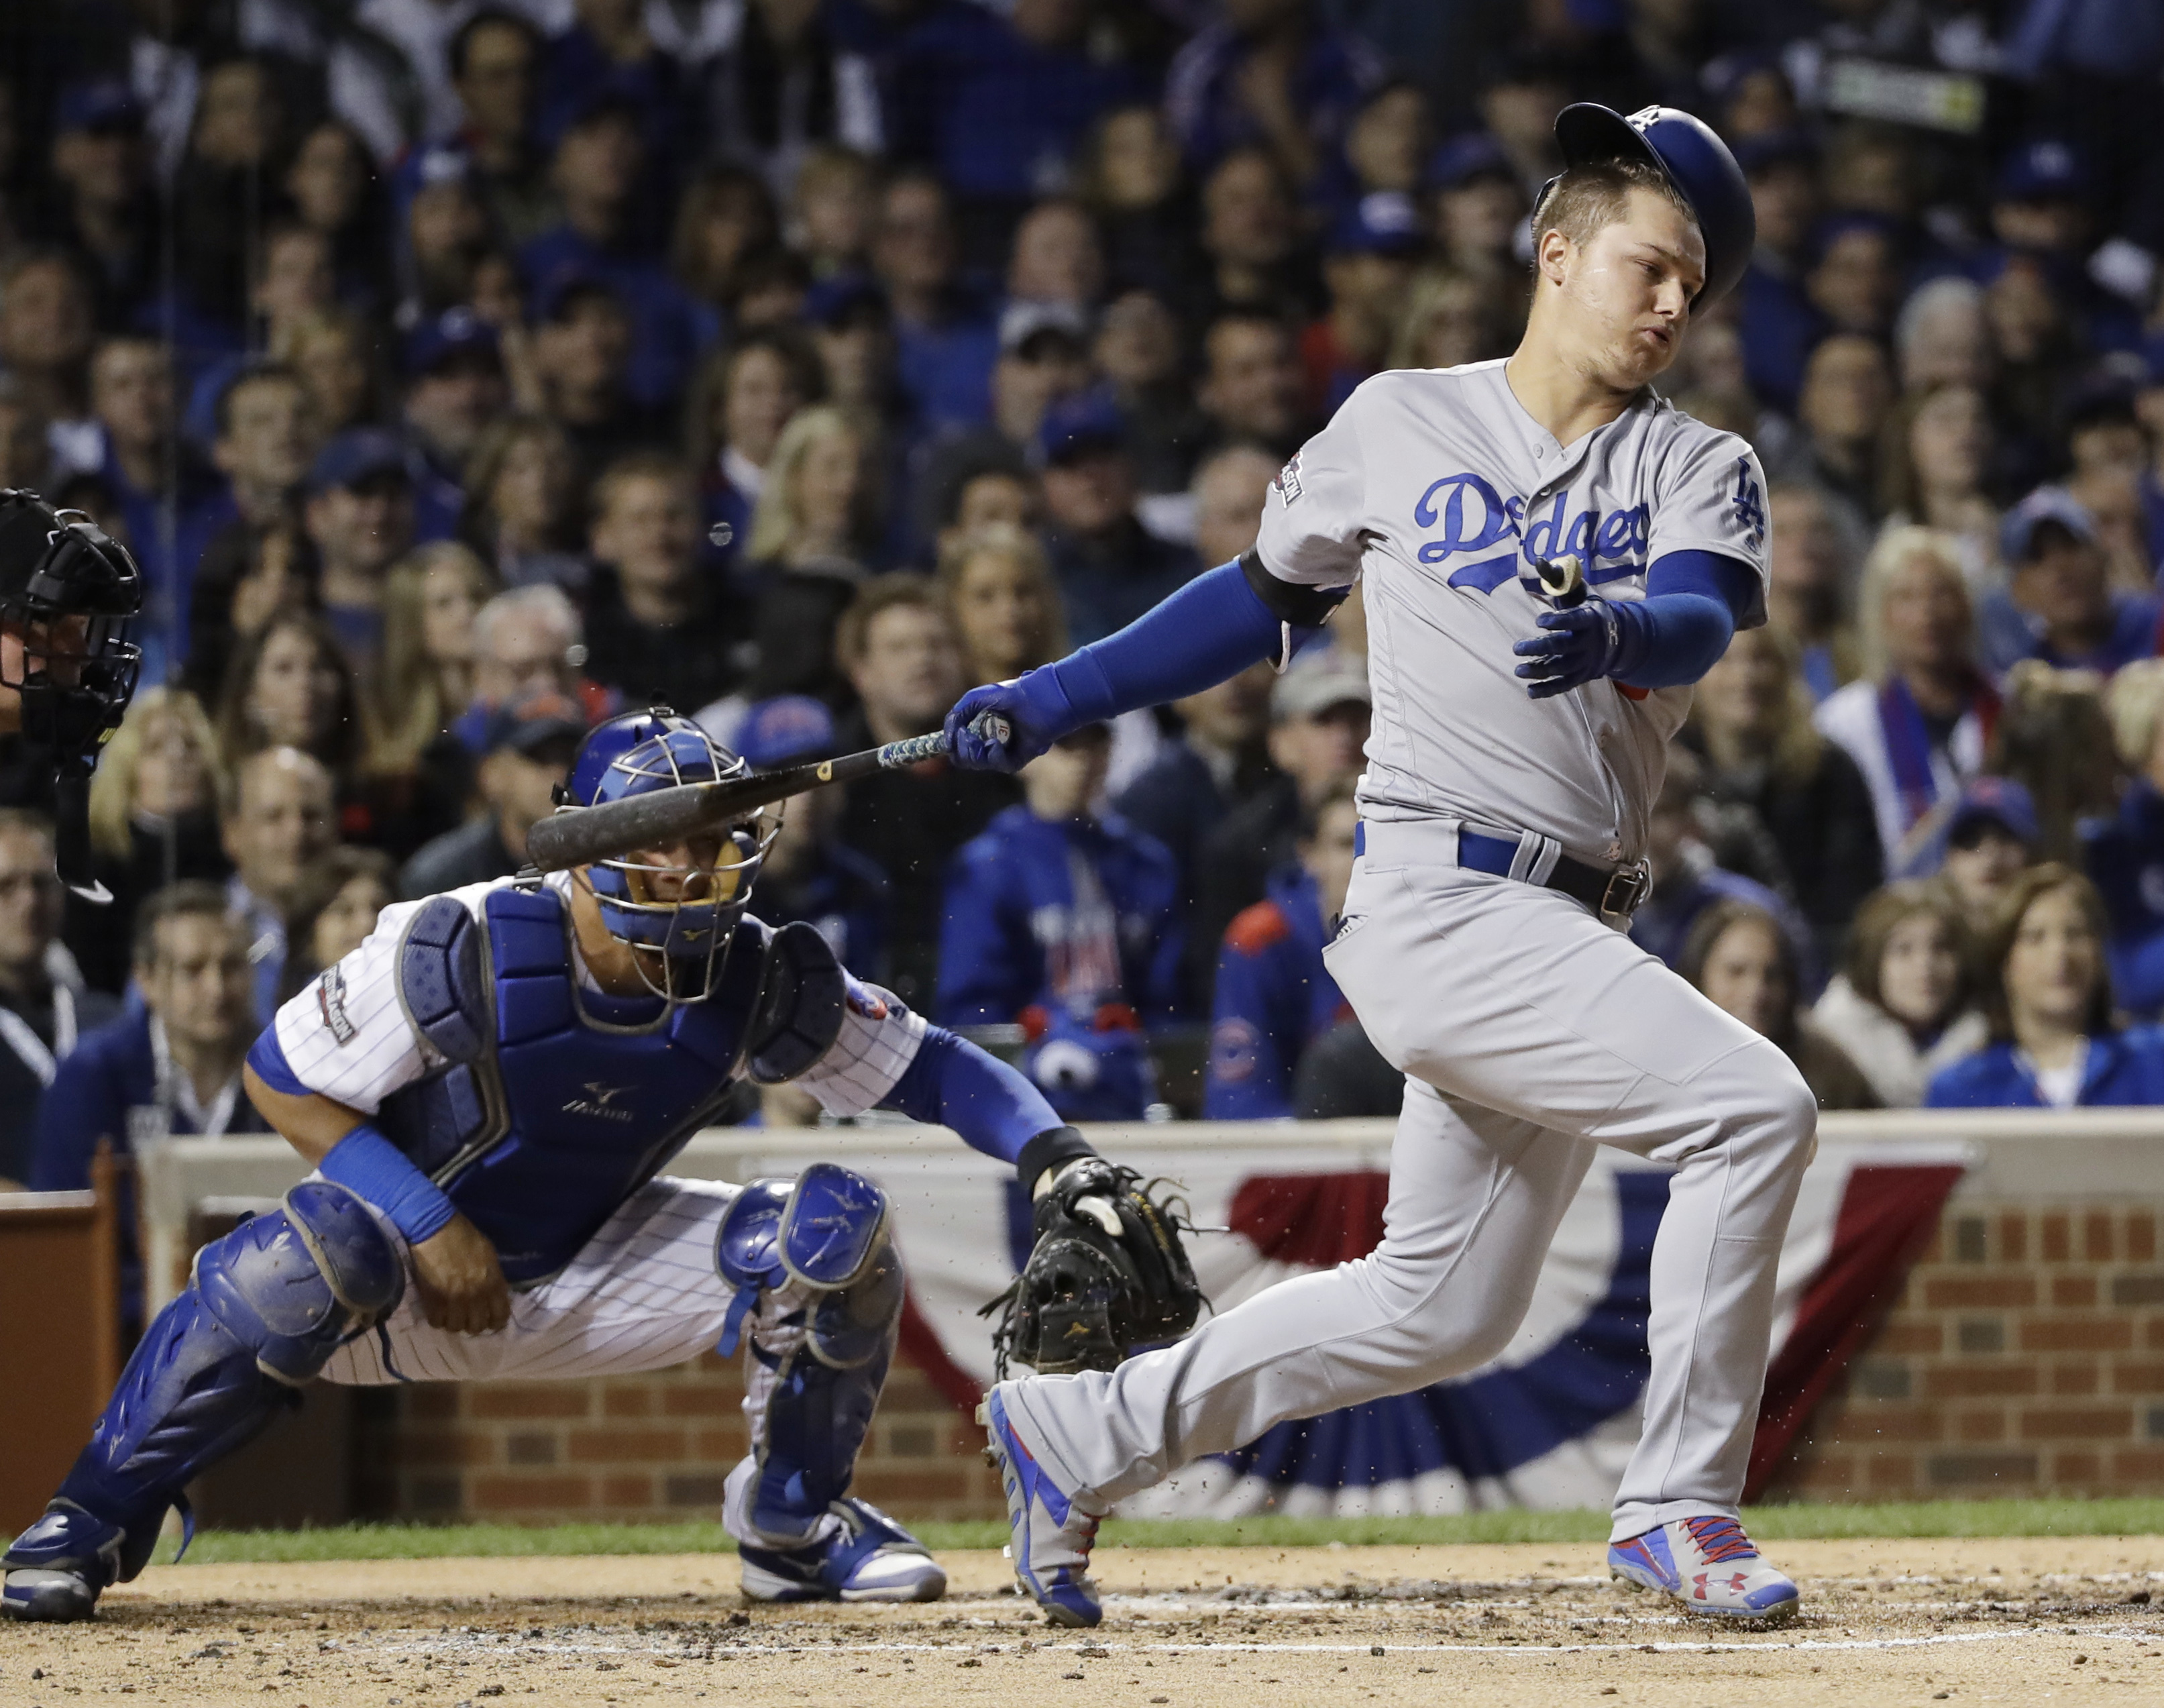 Los Angeles Dodgers center fielder Joc Pederson (31) loses his helmet as he swings strike during the second inning of Game 6 of the National League baseball championship series against the Chicago Cubs, Saturday, Oct. 22, 2016, in Chicago. (AP Photo/David